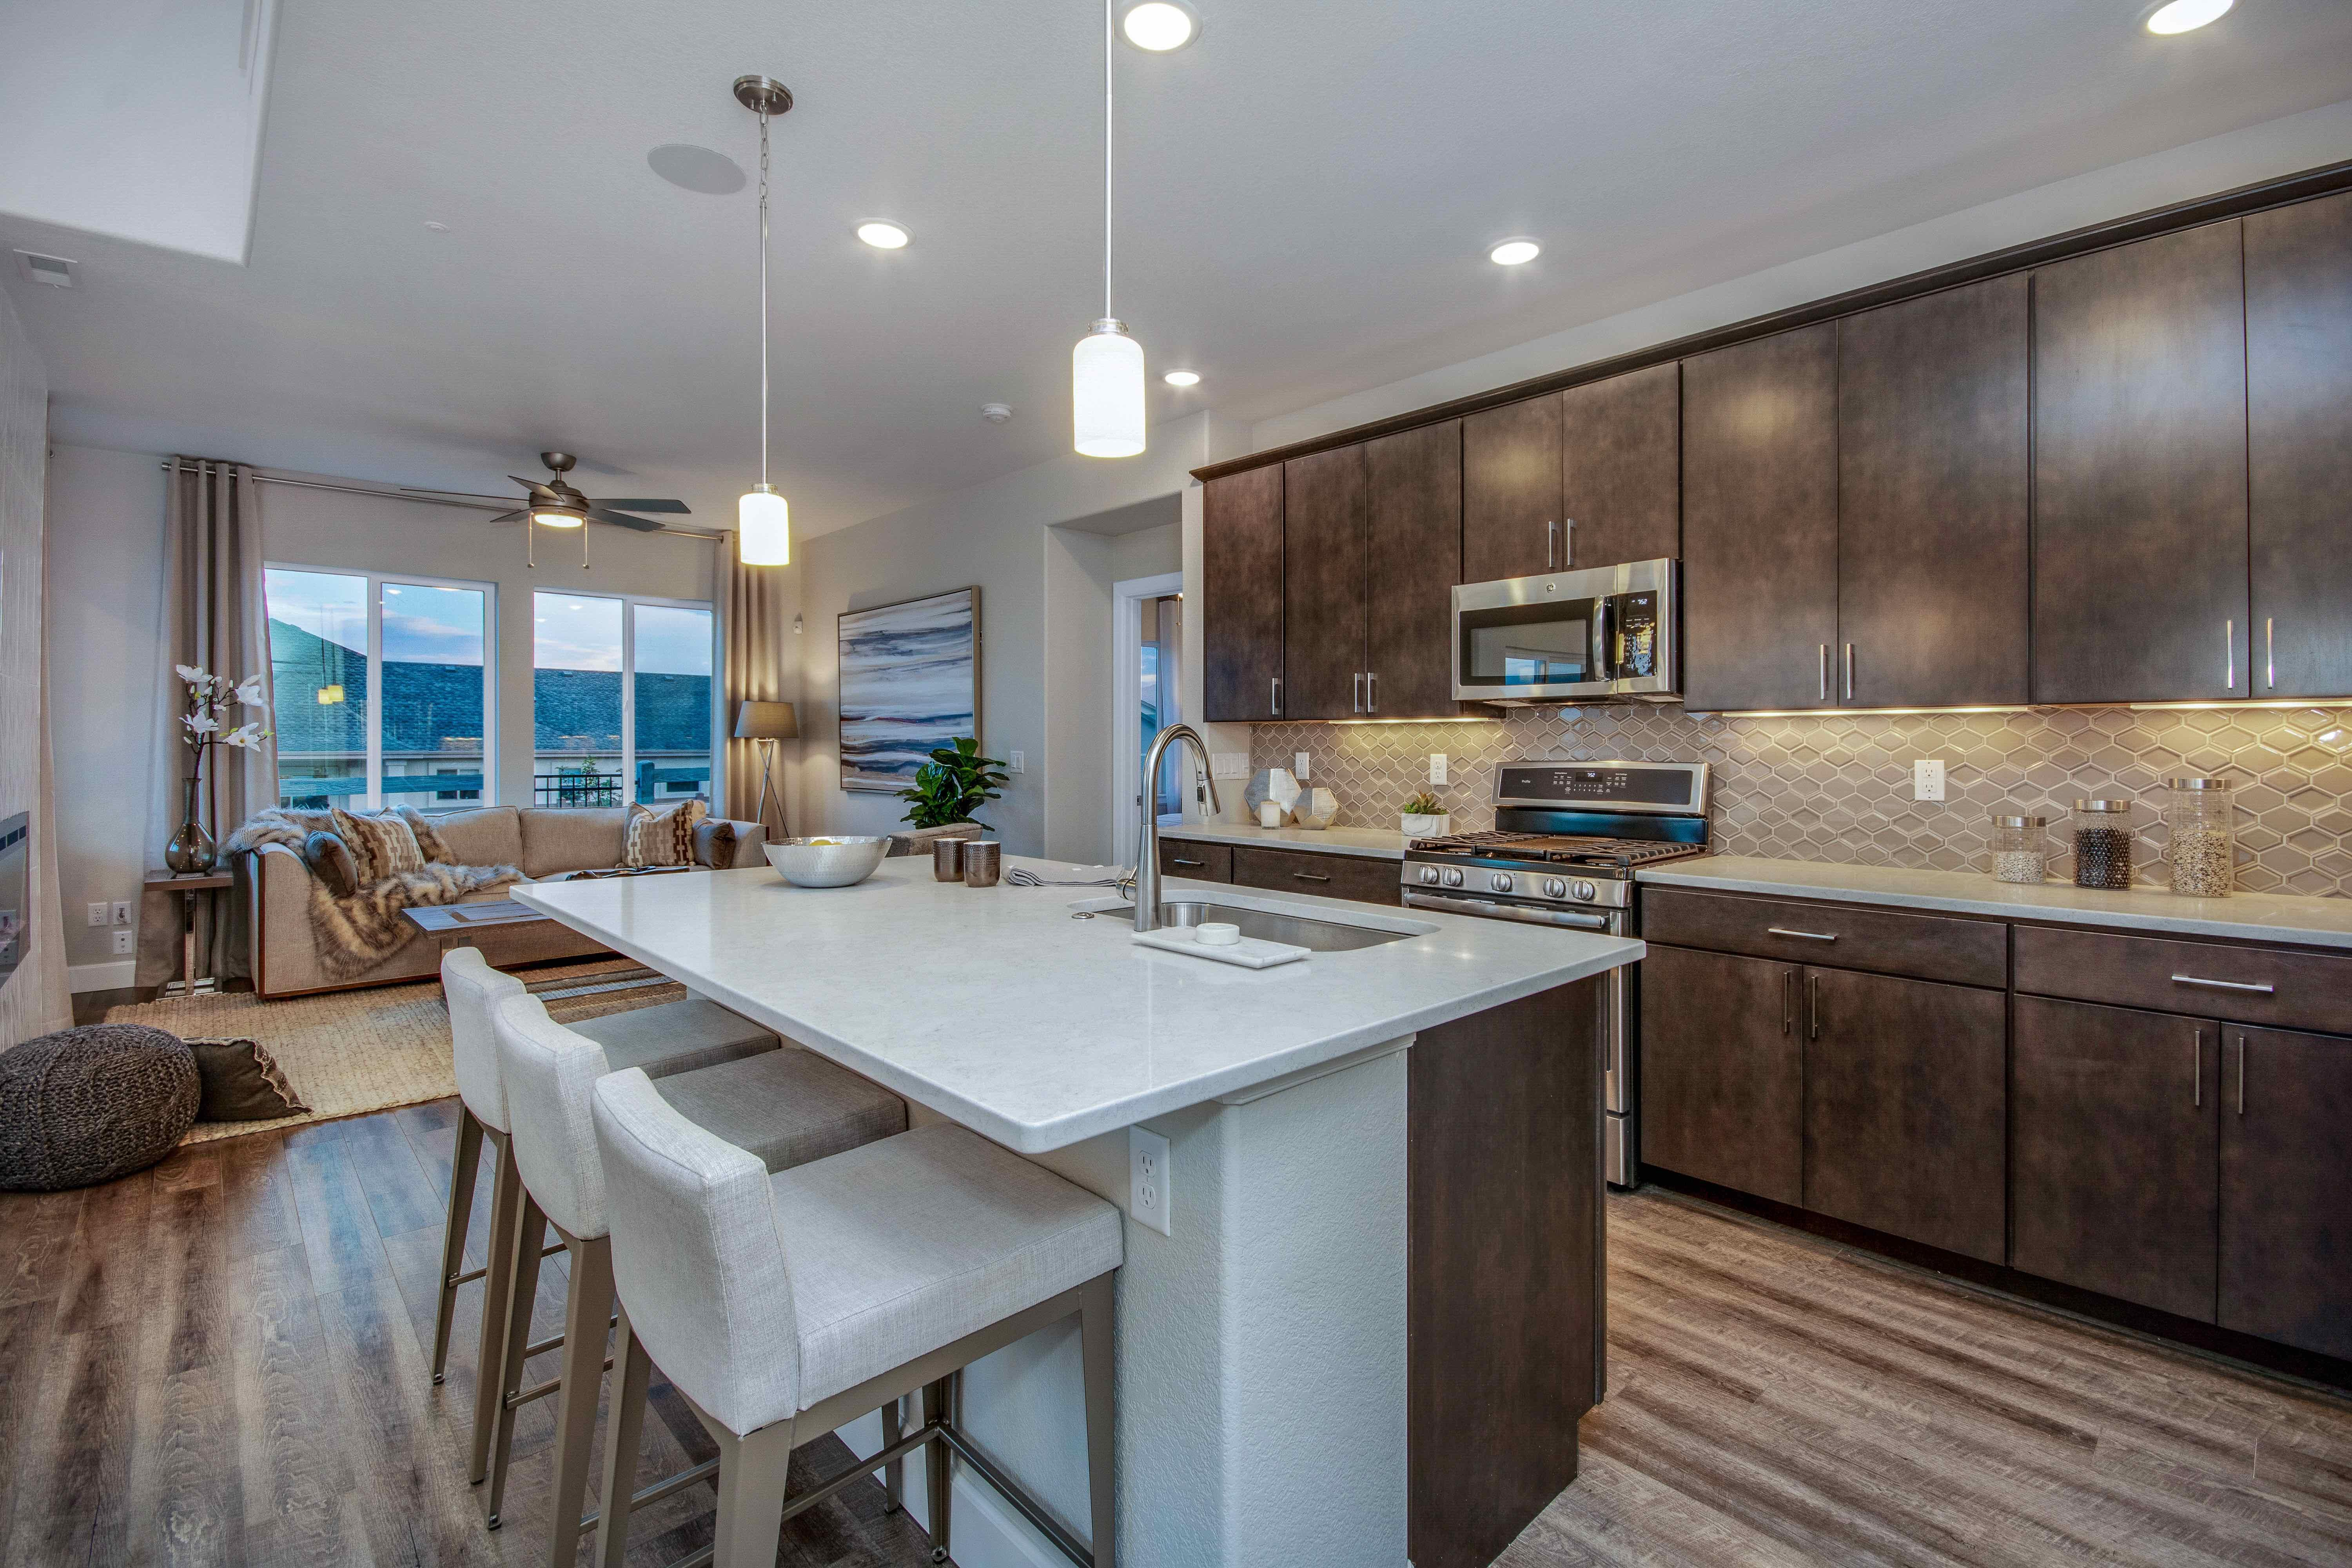 Kitchen featured in The Savannah By JM Weston Homes in Colorado Springs, CO